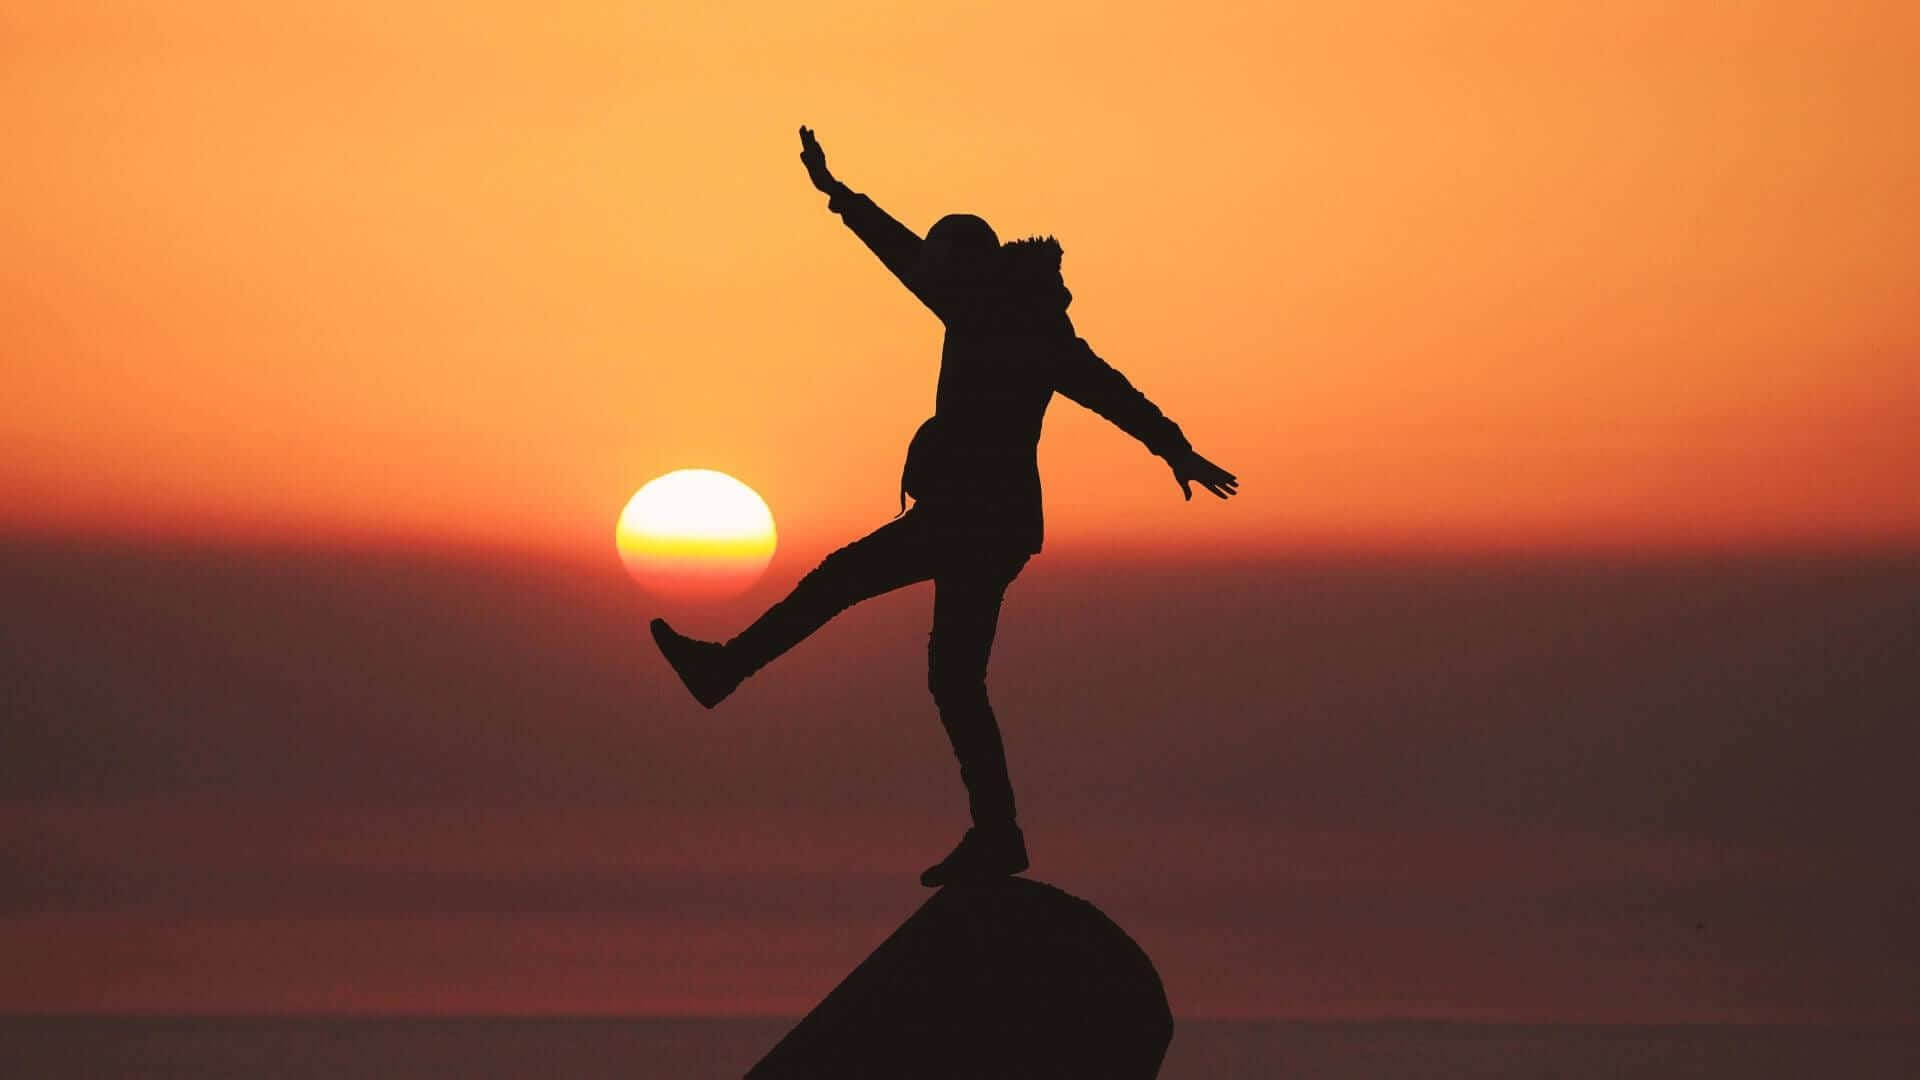 silhouette of a person standing on a rock